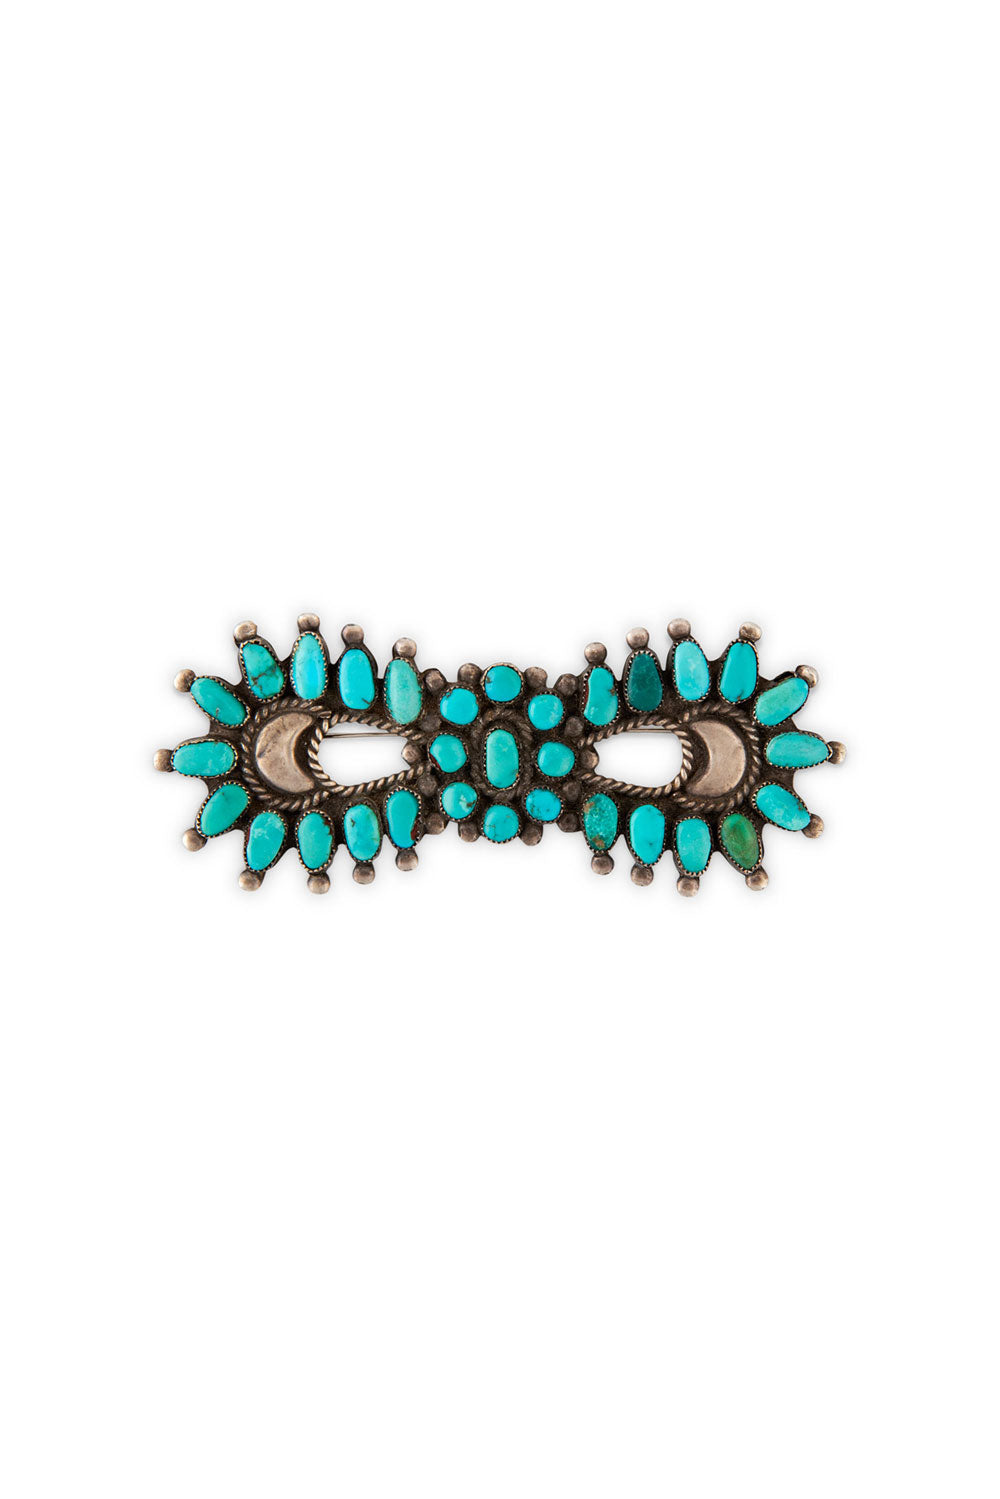 Pin, Cluster, Turquoise, Bowtie, Old Pawn, 254